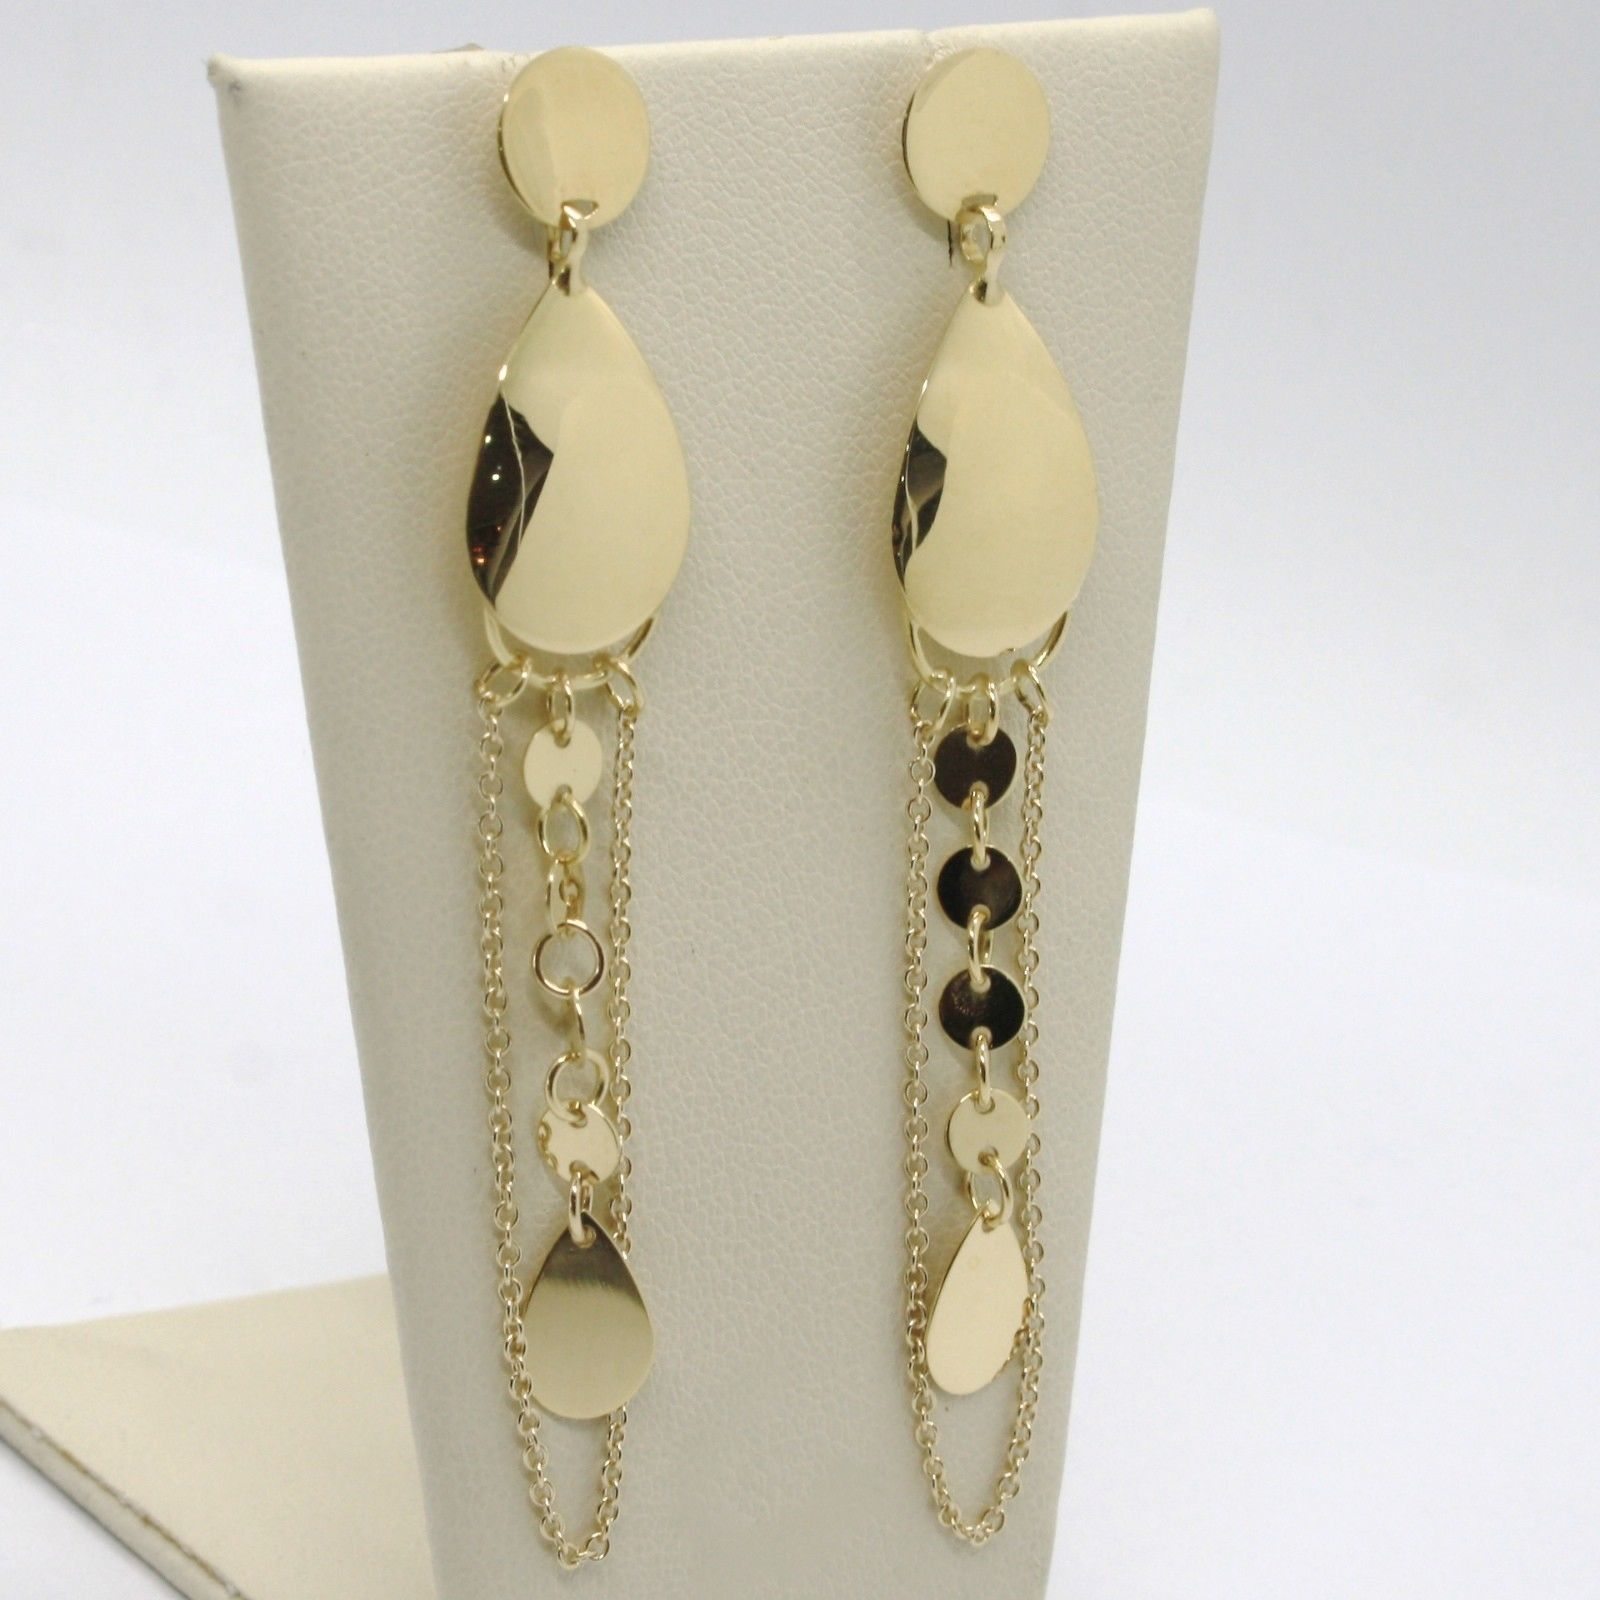 SOLID 18K YELLOW GOLD LONG PENDANT EARRINGS WITH DROPS ROLO CHAIN, MADE IN ITALY